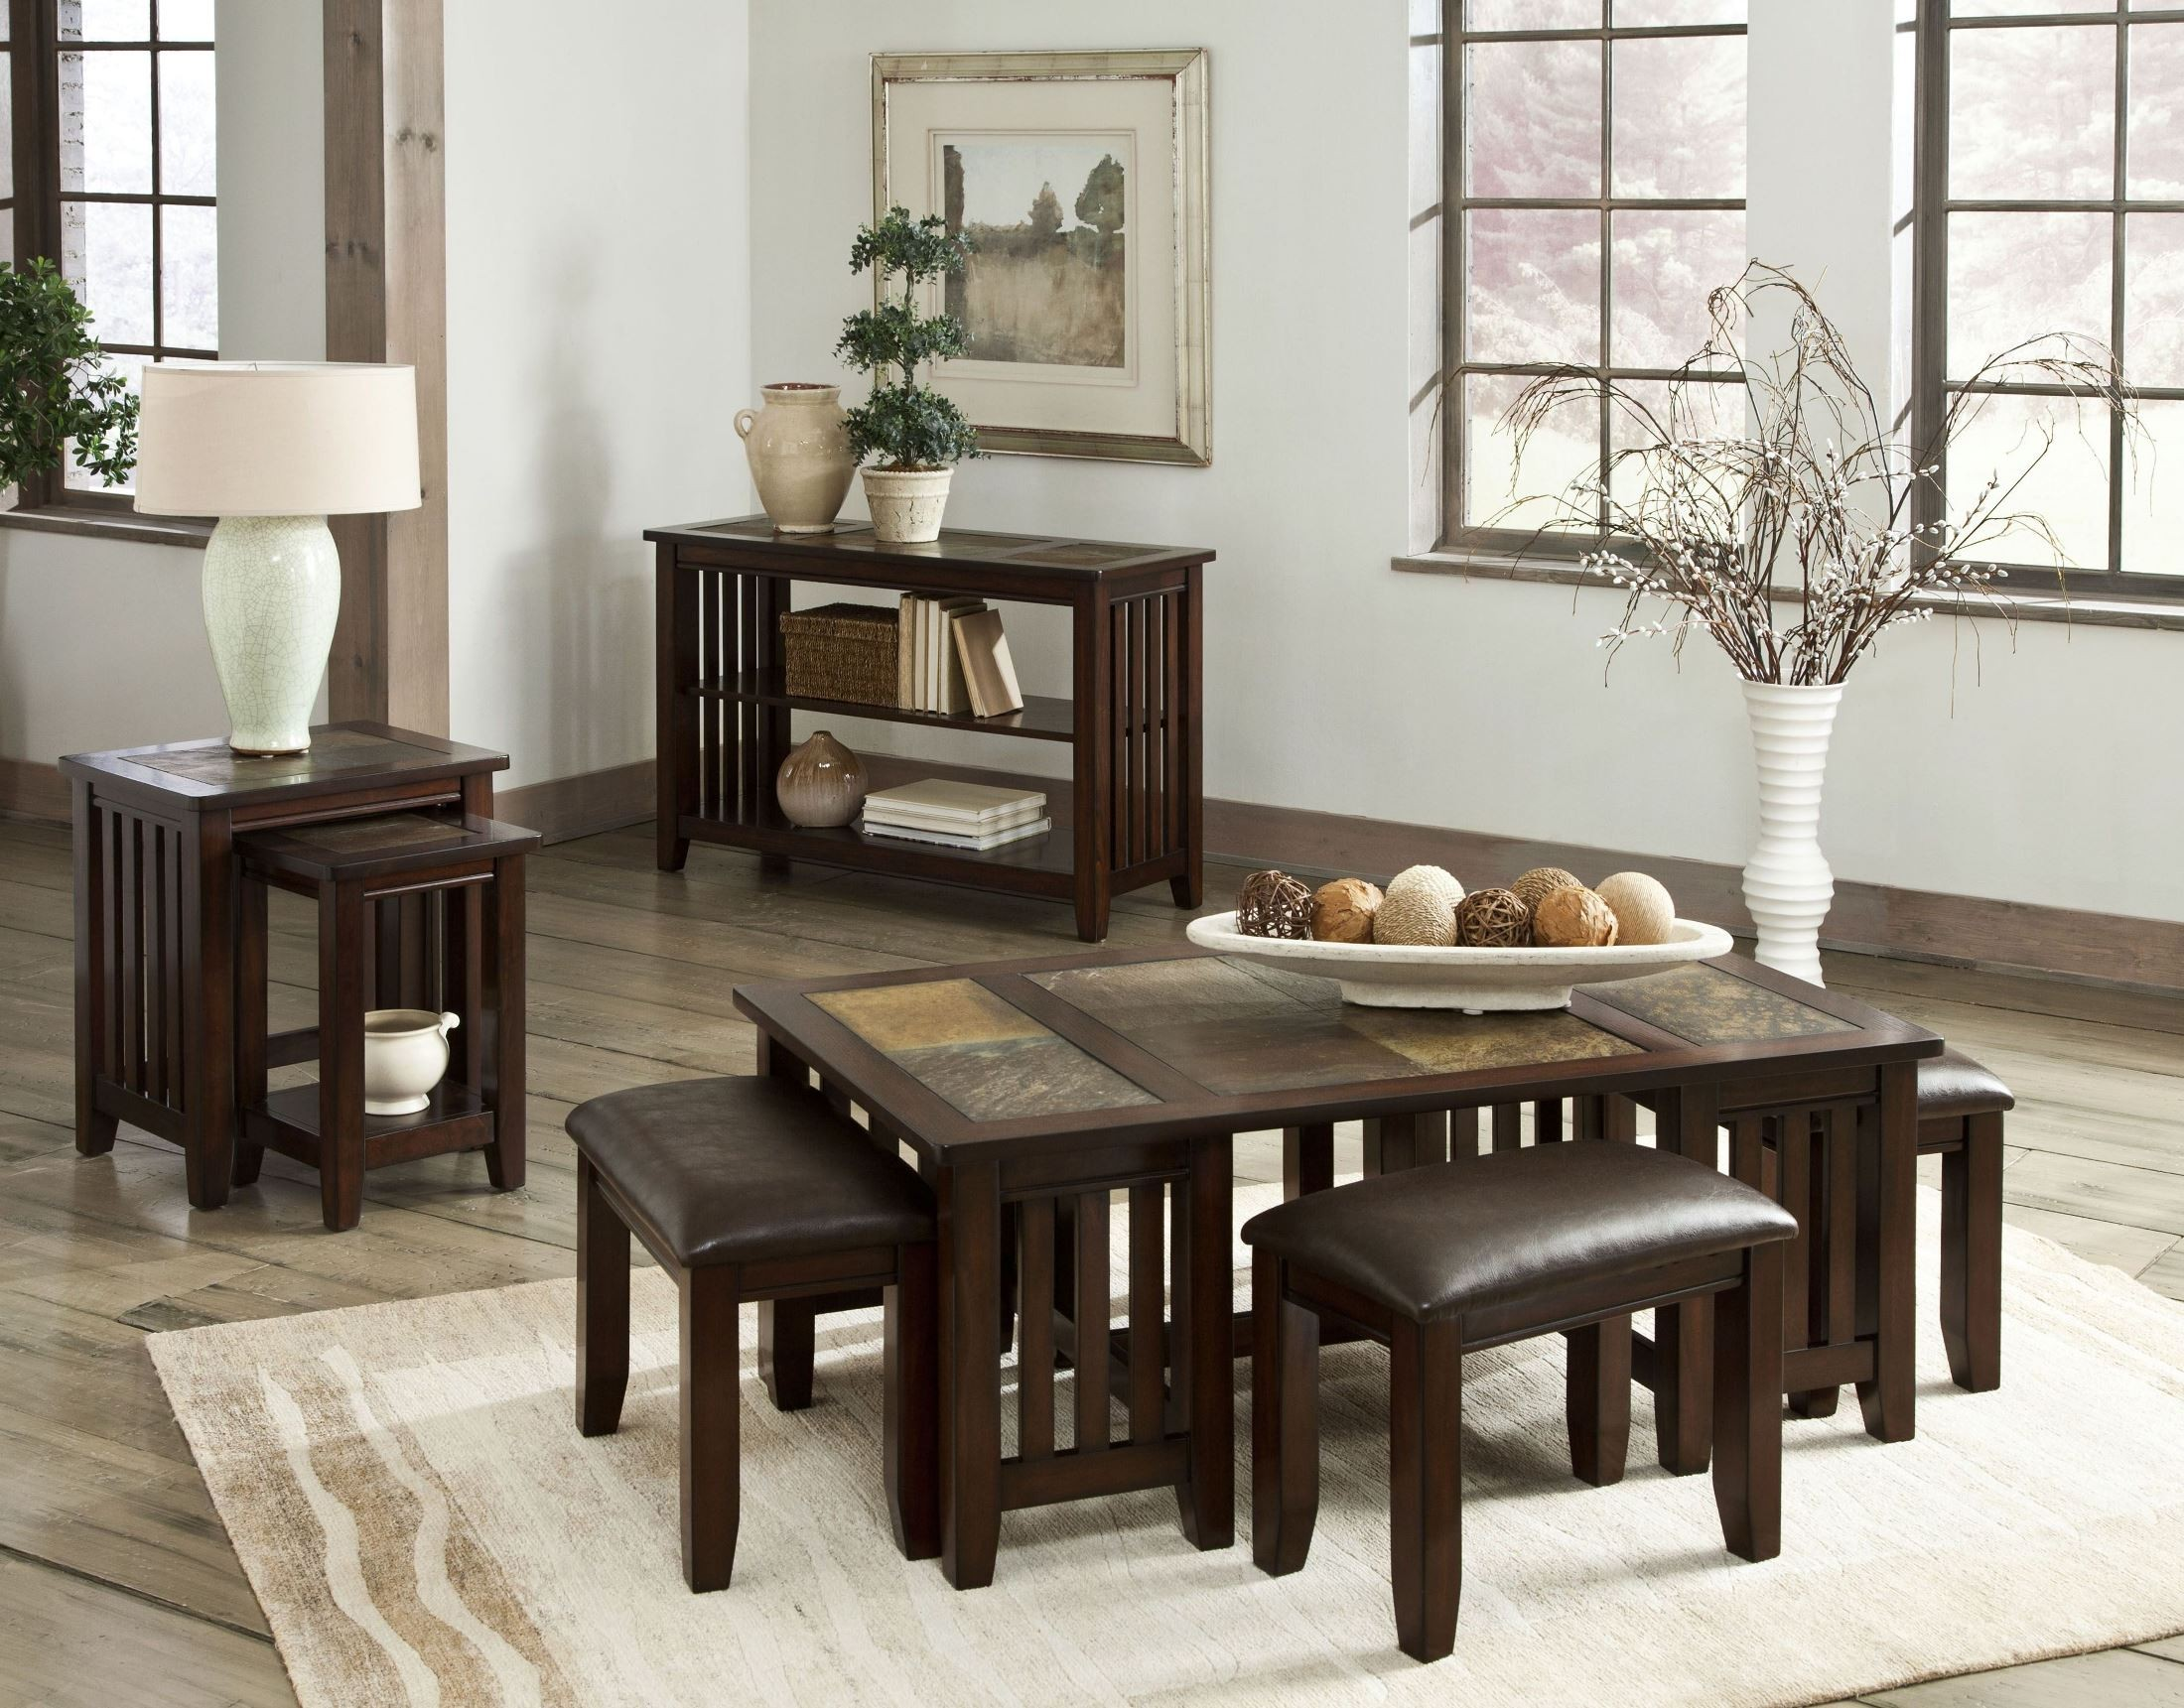 Napa Valley Brown Oak Nesting Table 20654 Standard Furniture